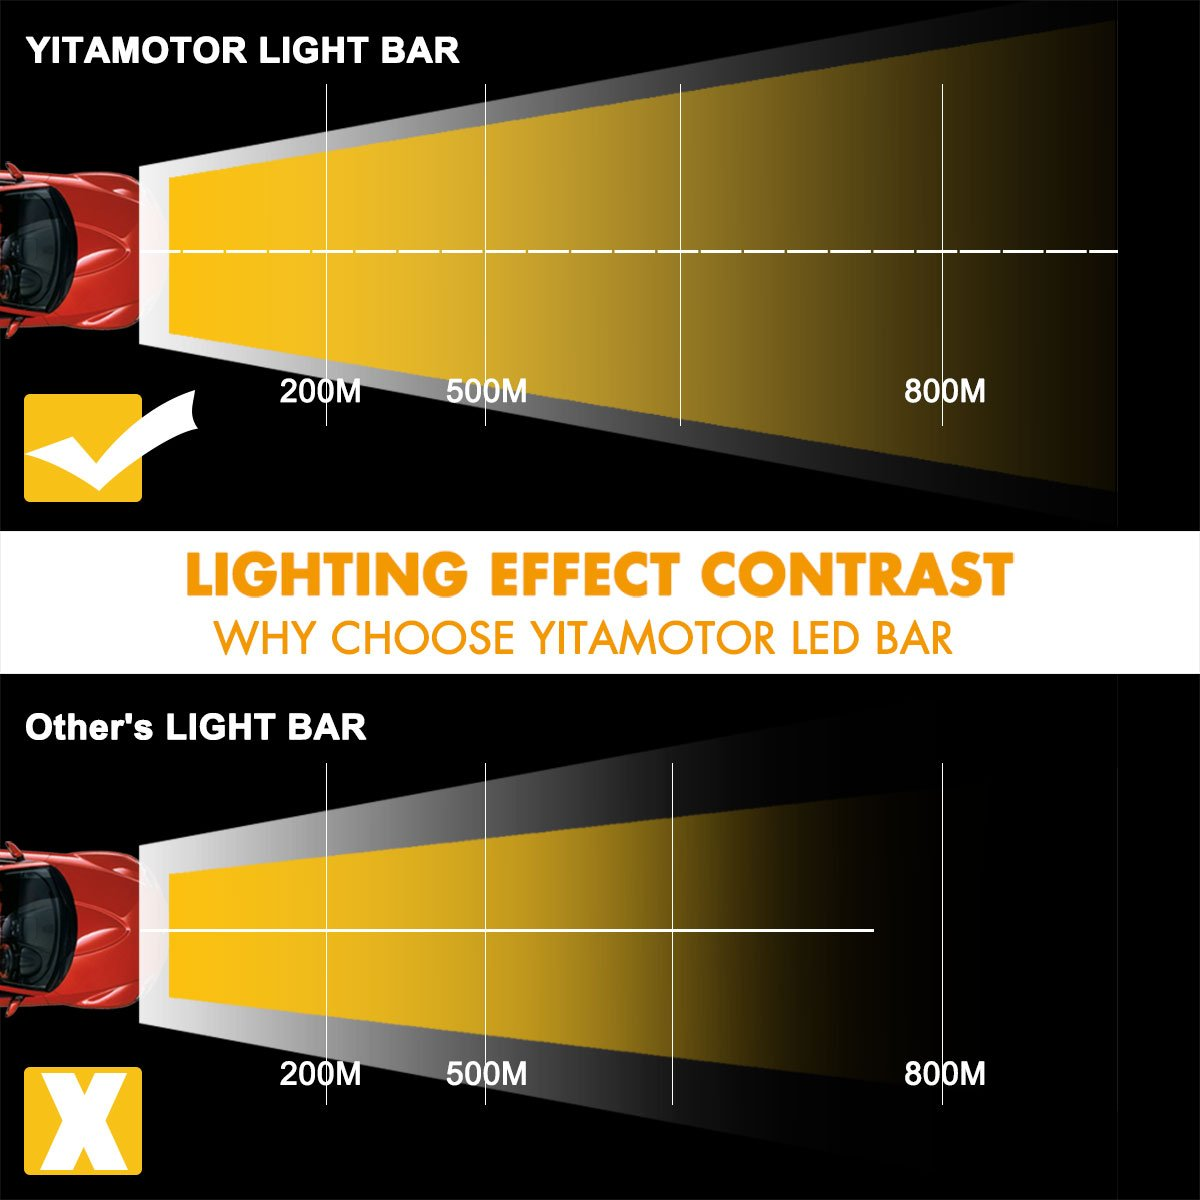 Led Light Bar Yitamotor 52 Inch For Jeep 2006 Wrangler Front Suspension Diagram Tj With Brackets And Switch On Off Wiring Harness 300w Spot Flood Combo Offroad